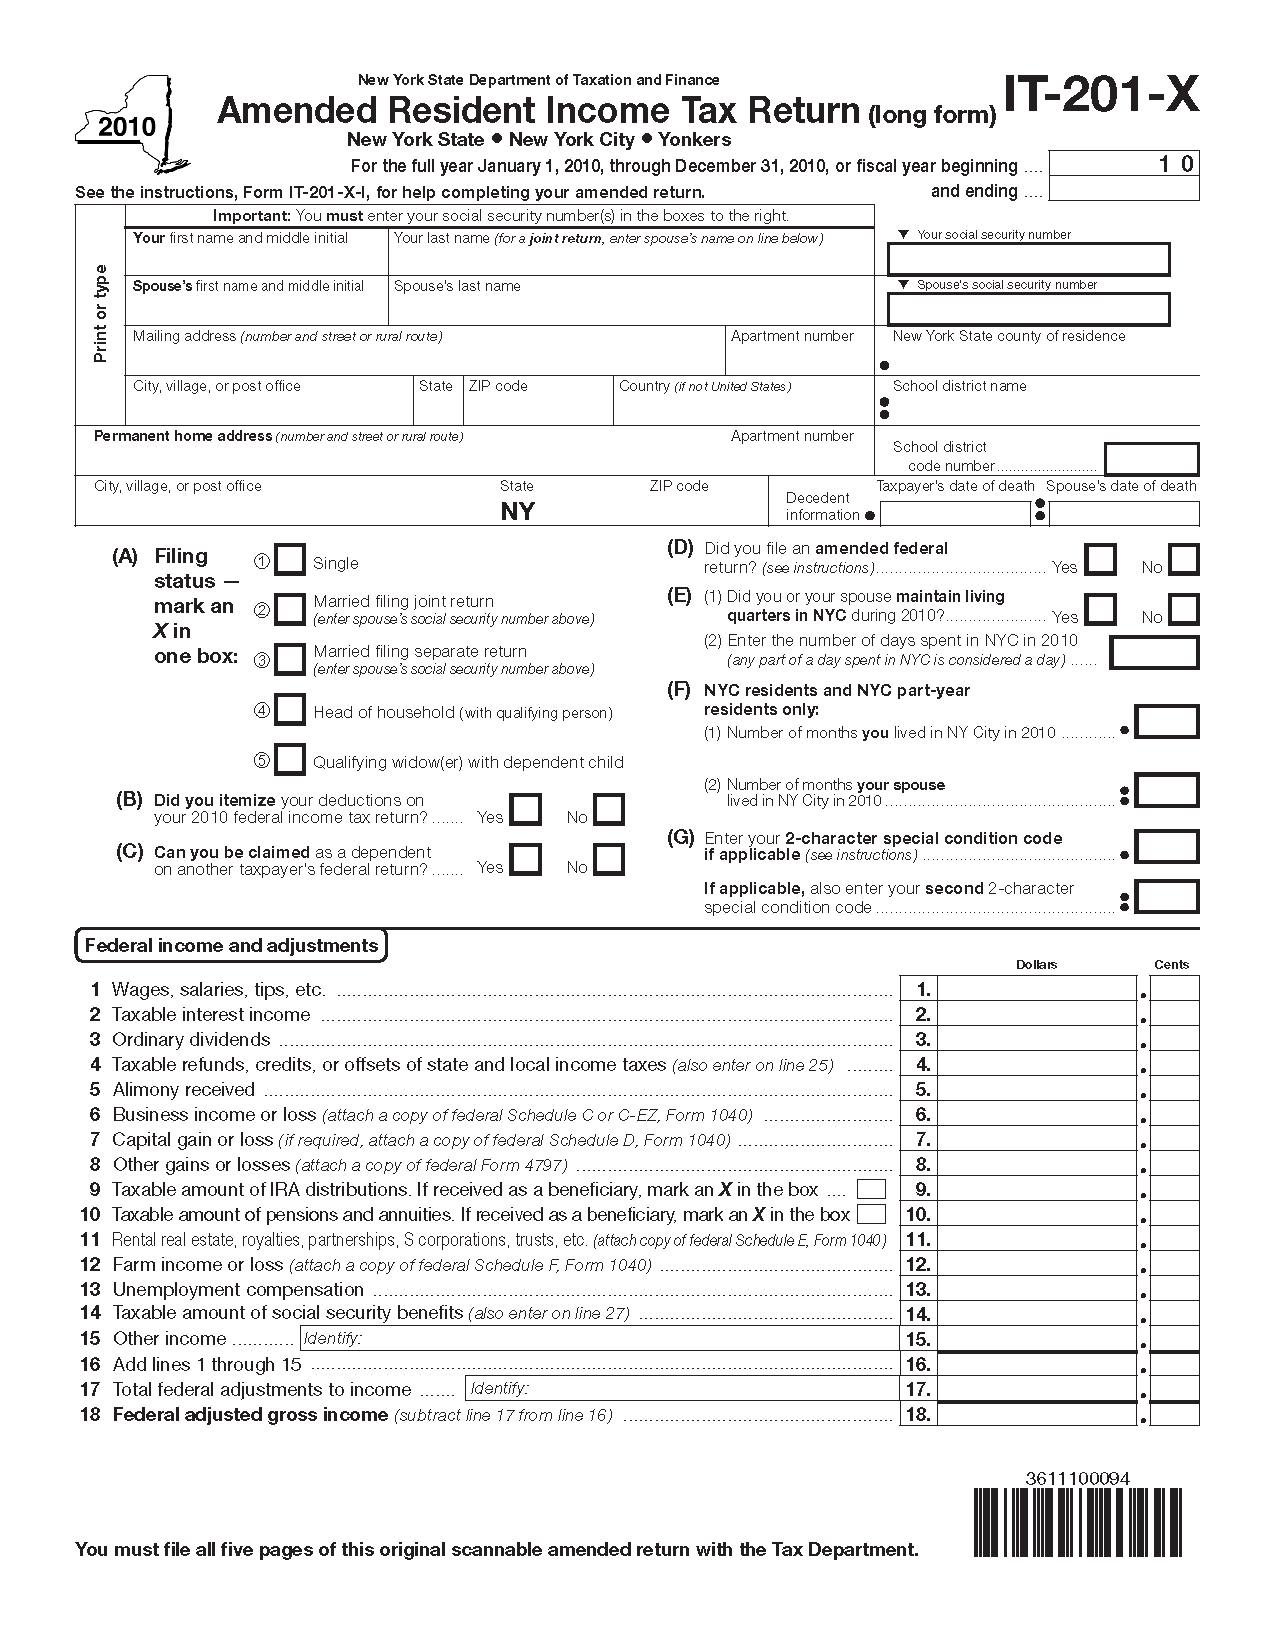 Form It 201 X 2010 Fill In Amended Resident Income Tax Return